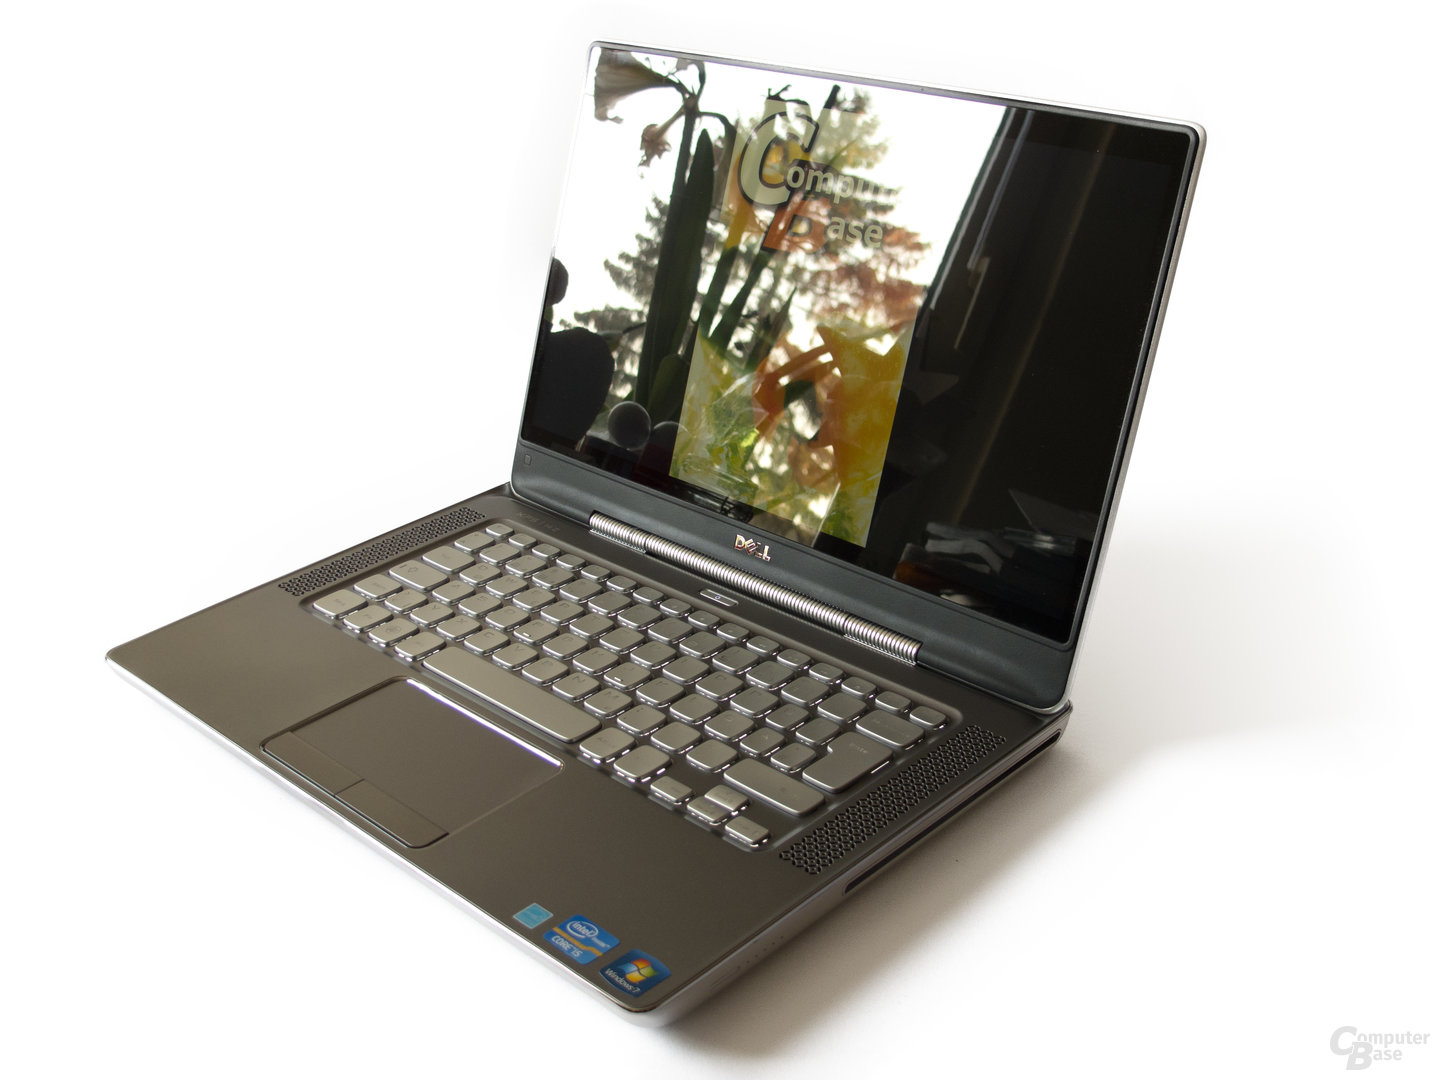 Dell XPS 14z: Display